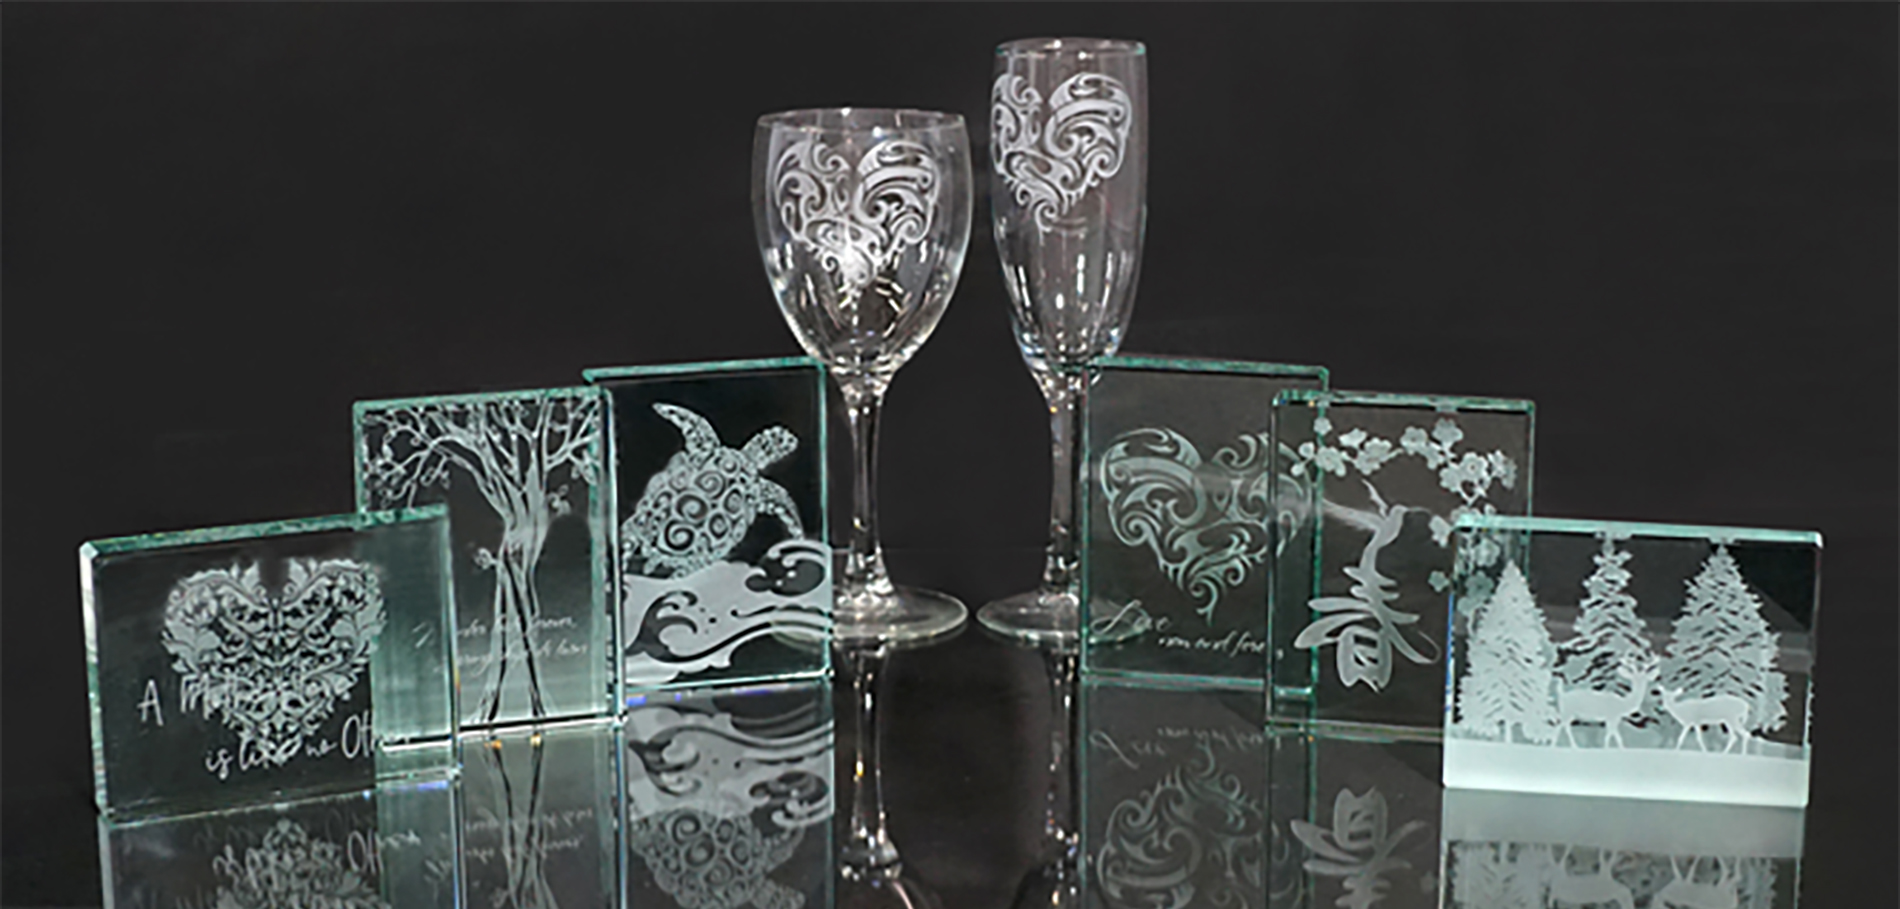 Etched Glassware for Valentines Day - Session 3